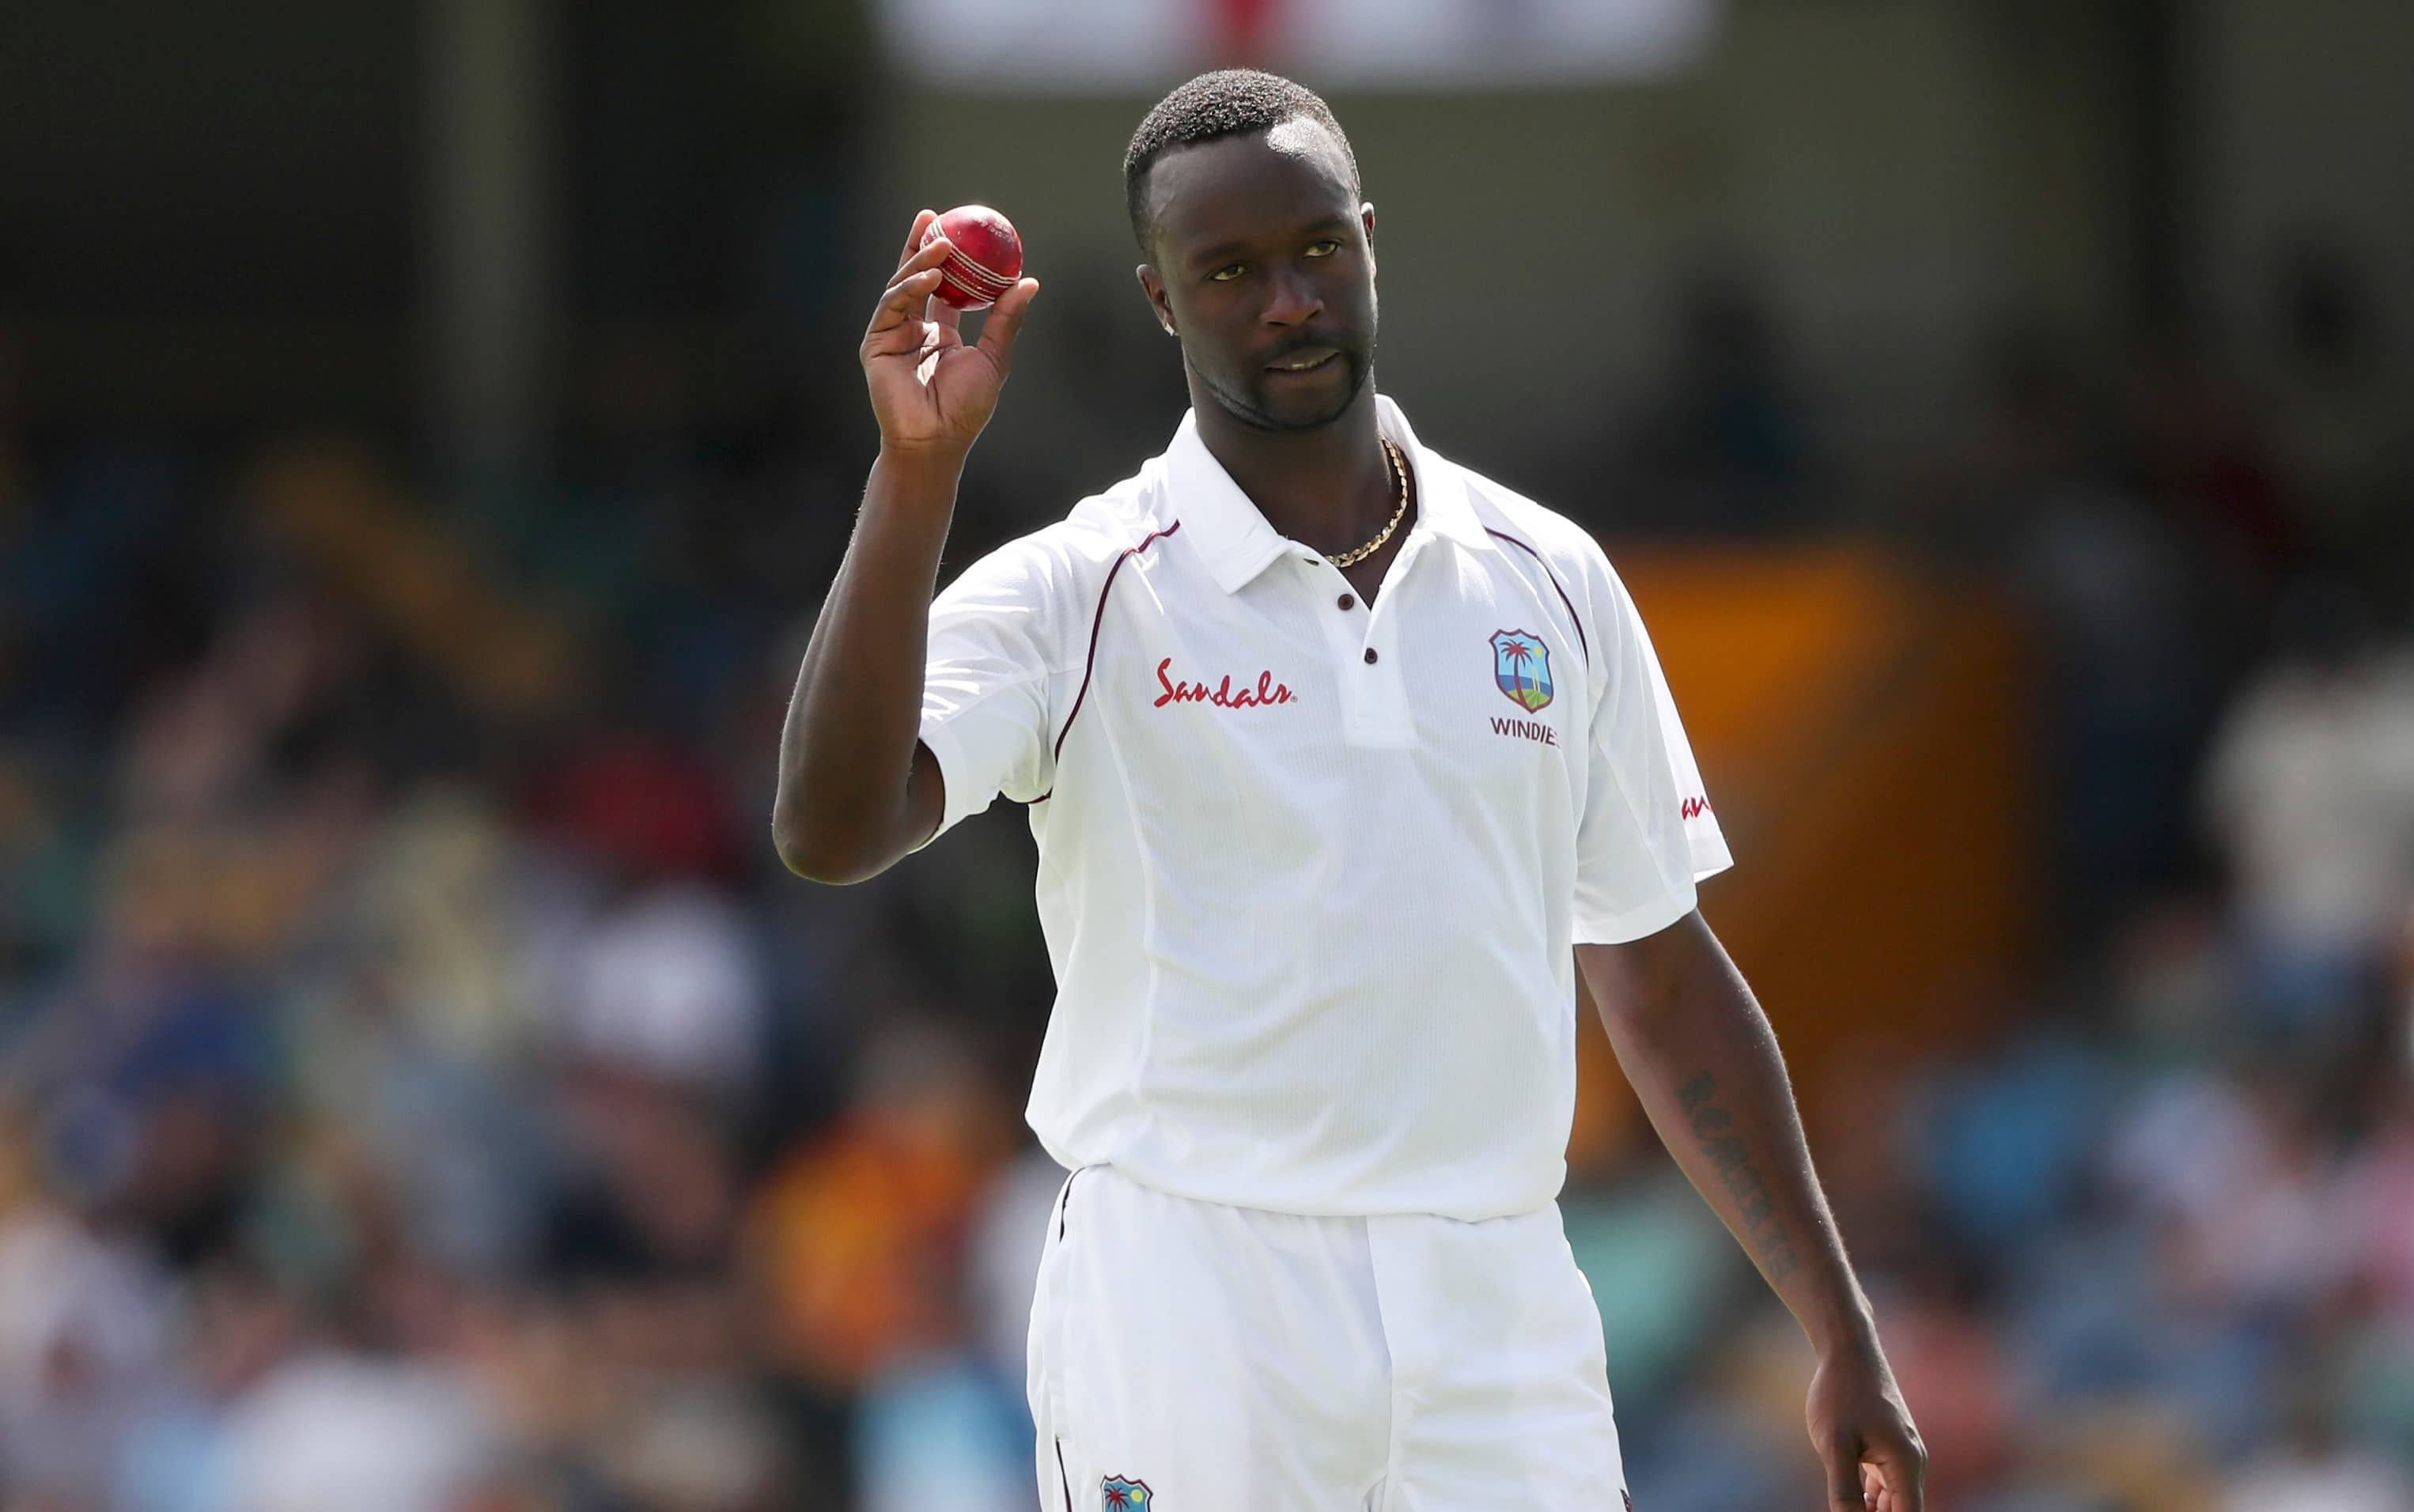 KEMAR ROACH- THE TRUE SUCCESSOR TO THE WEST INDIES PACE TRADITION